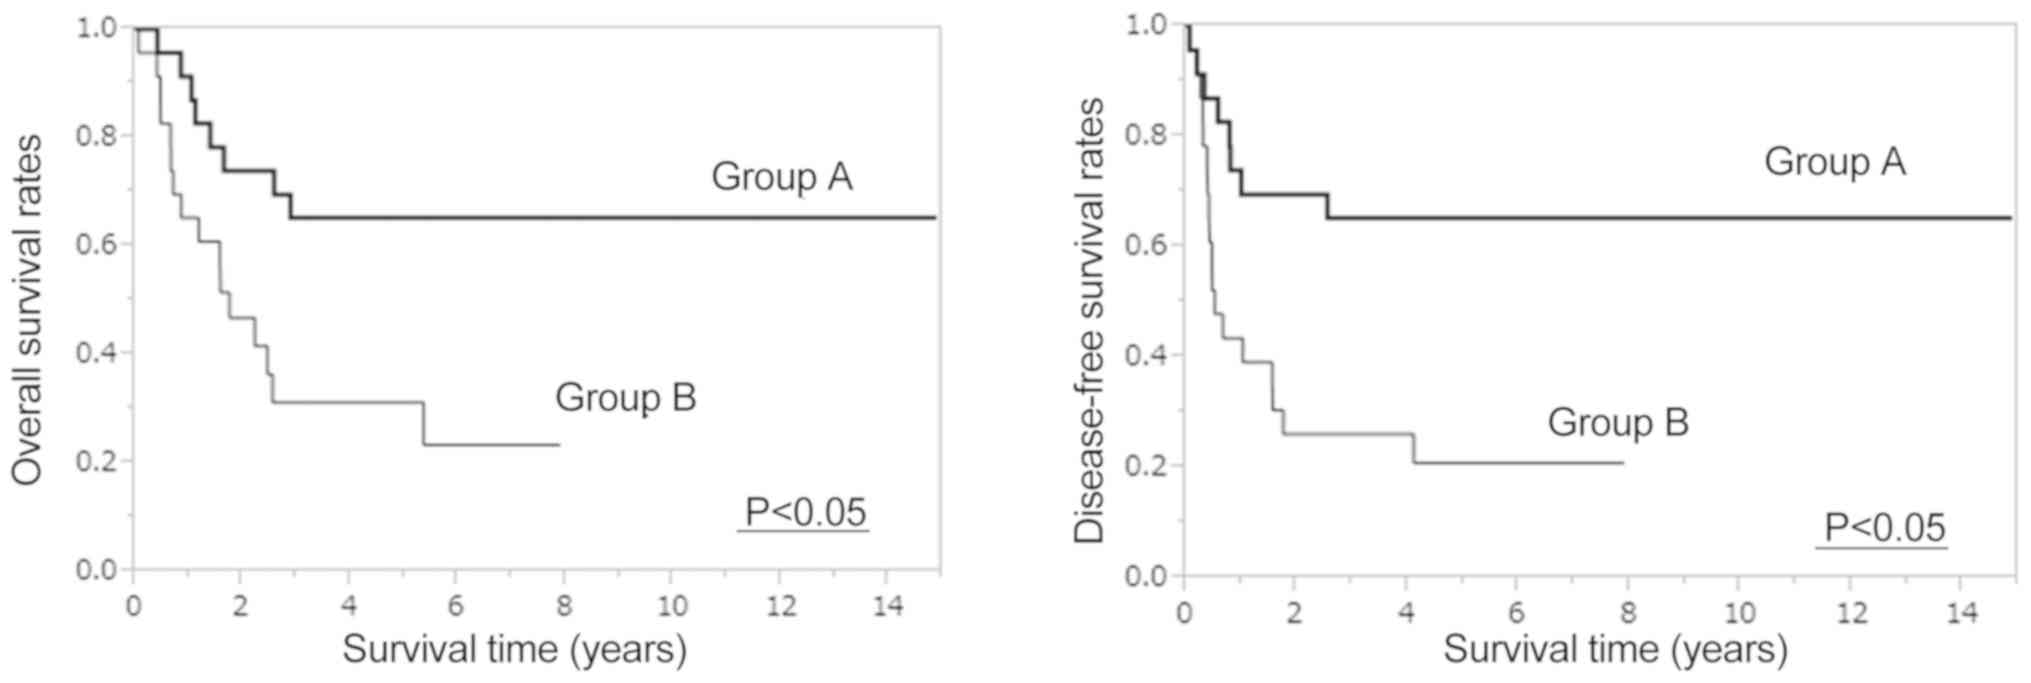 Clinical significance of preoperative chemoradiotherapy for